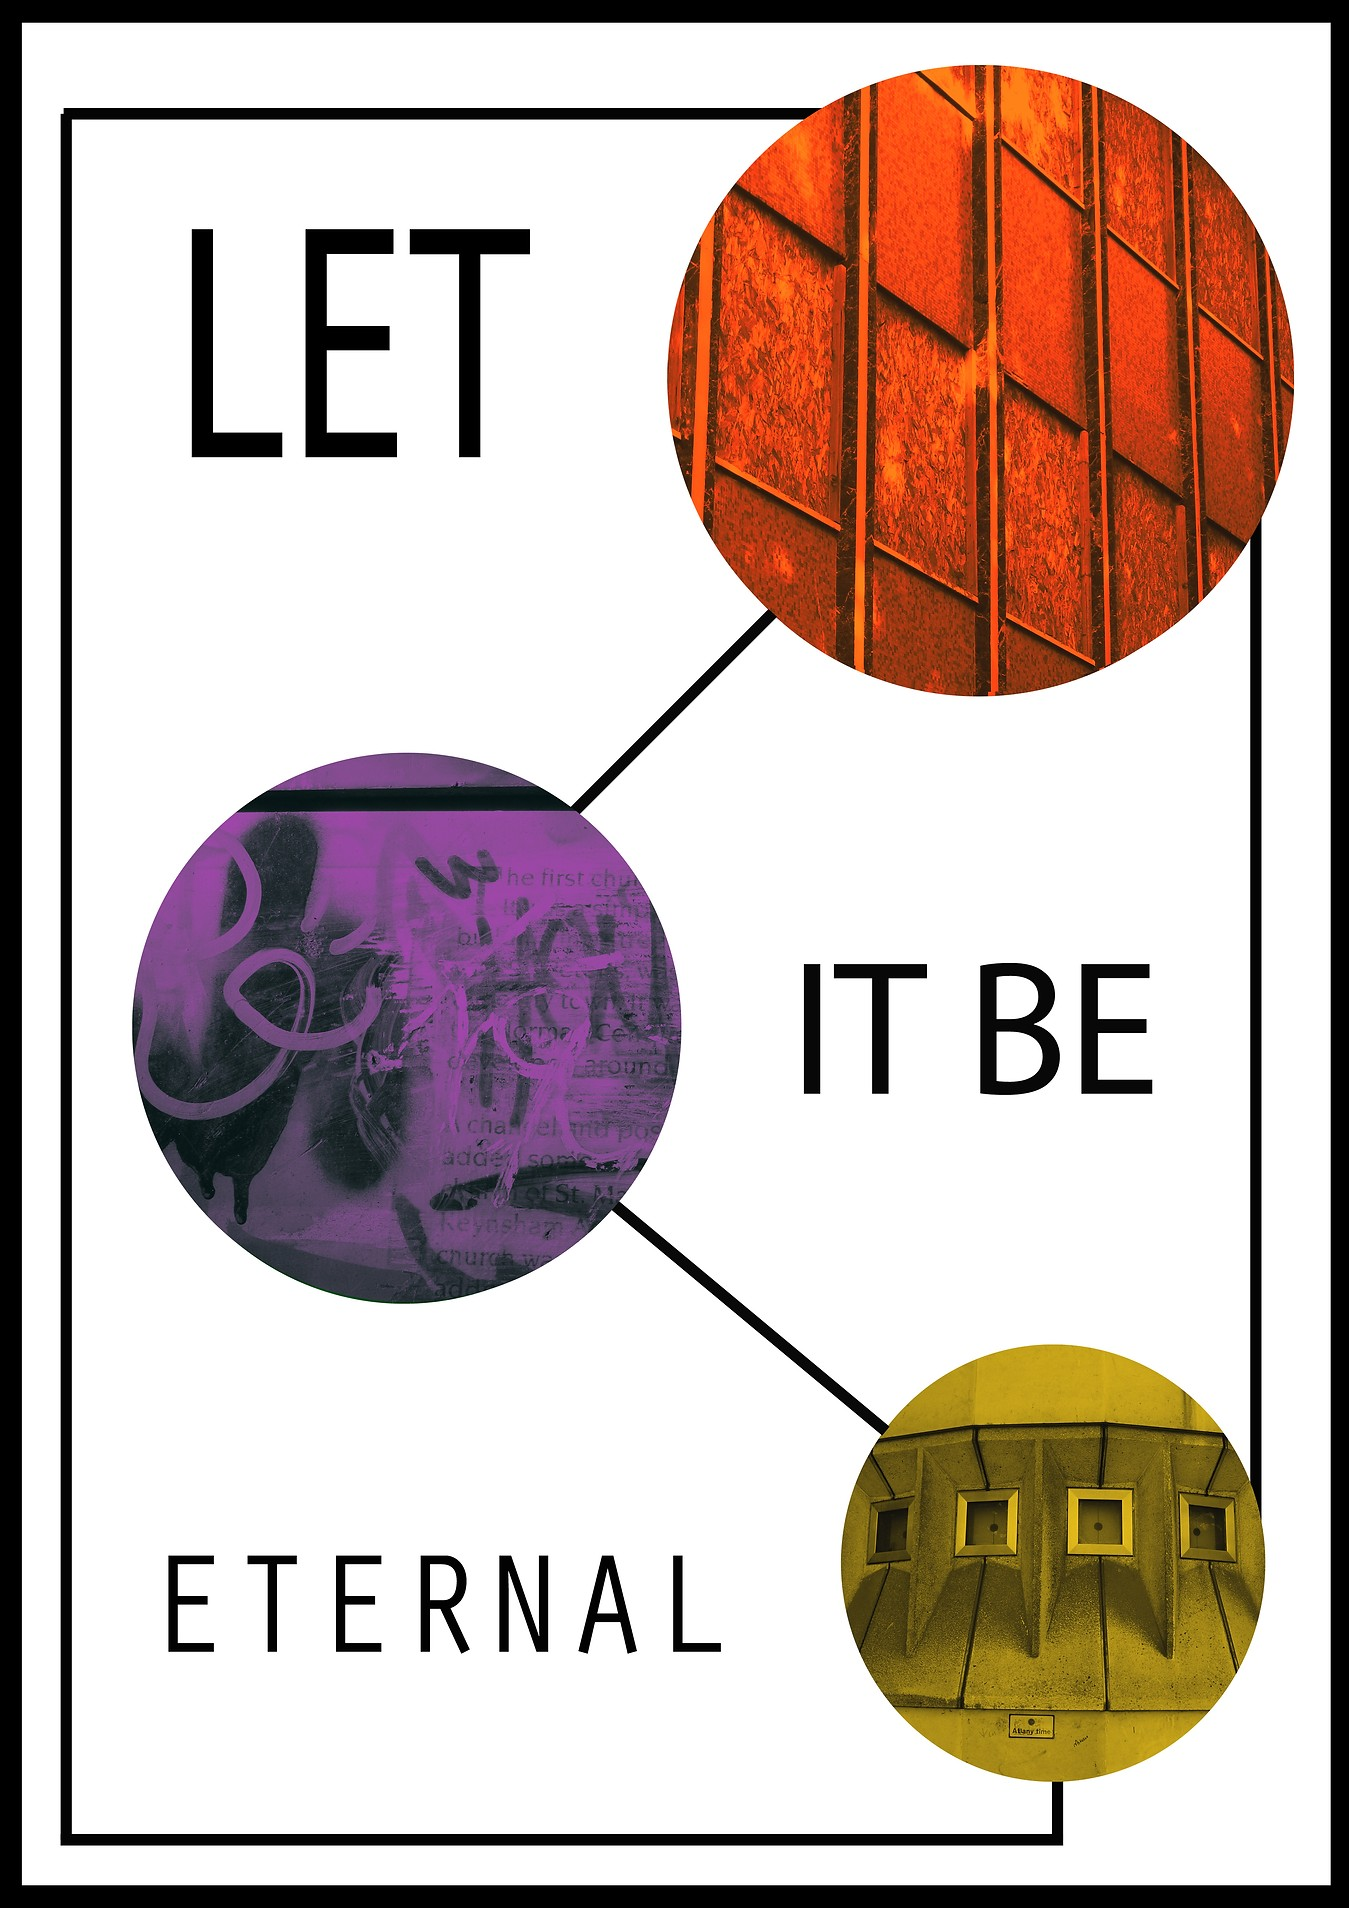 Let it be eternal